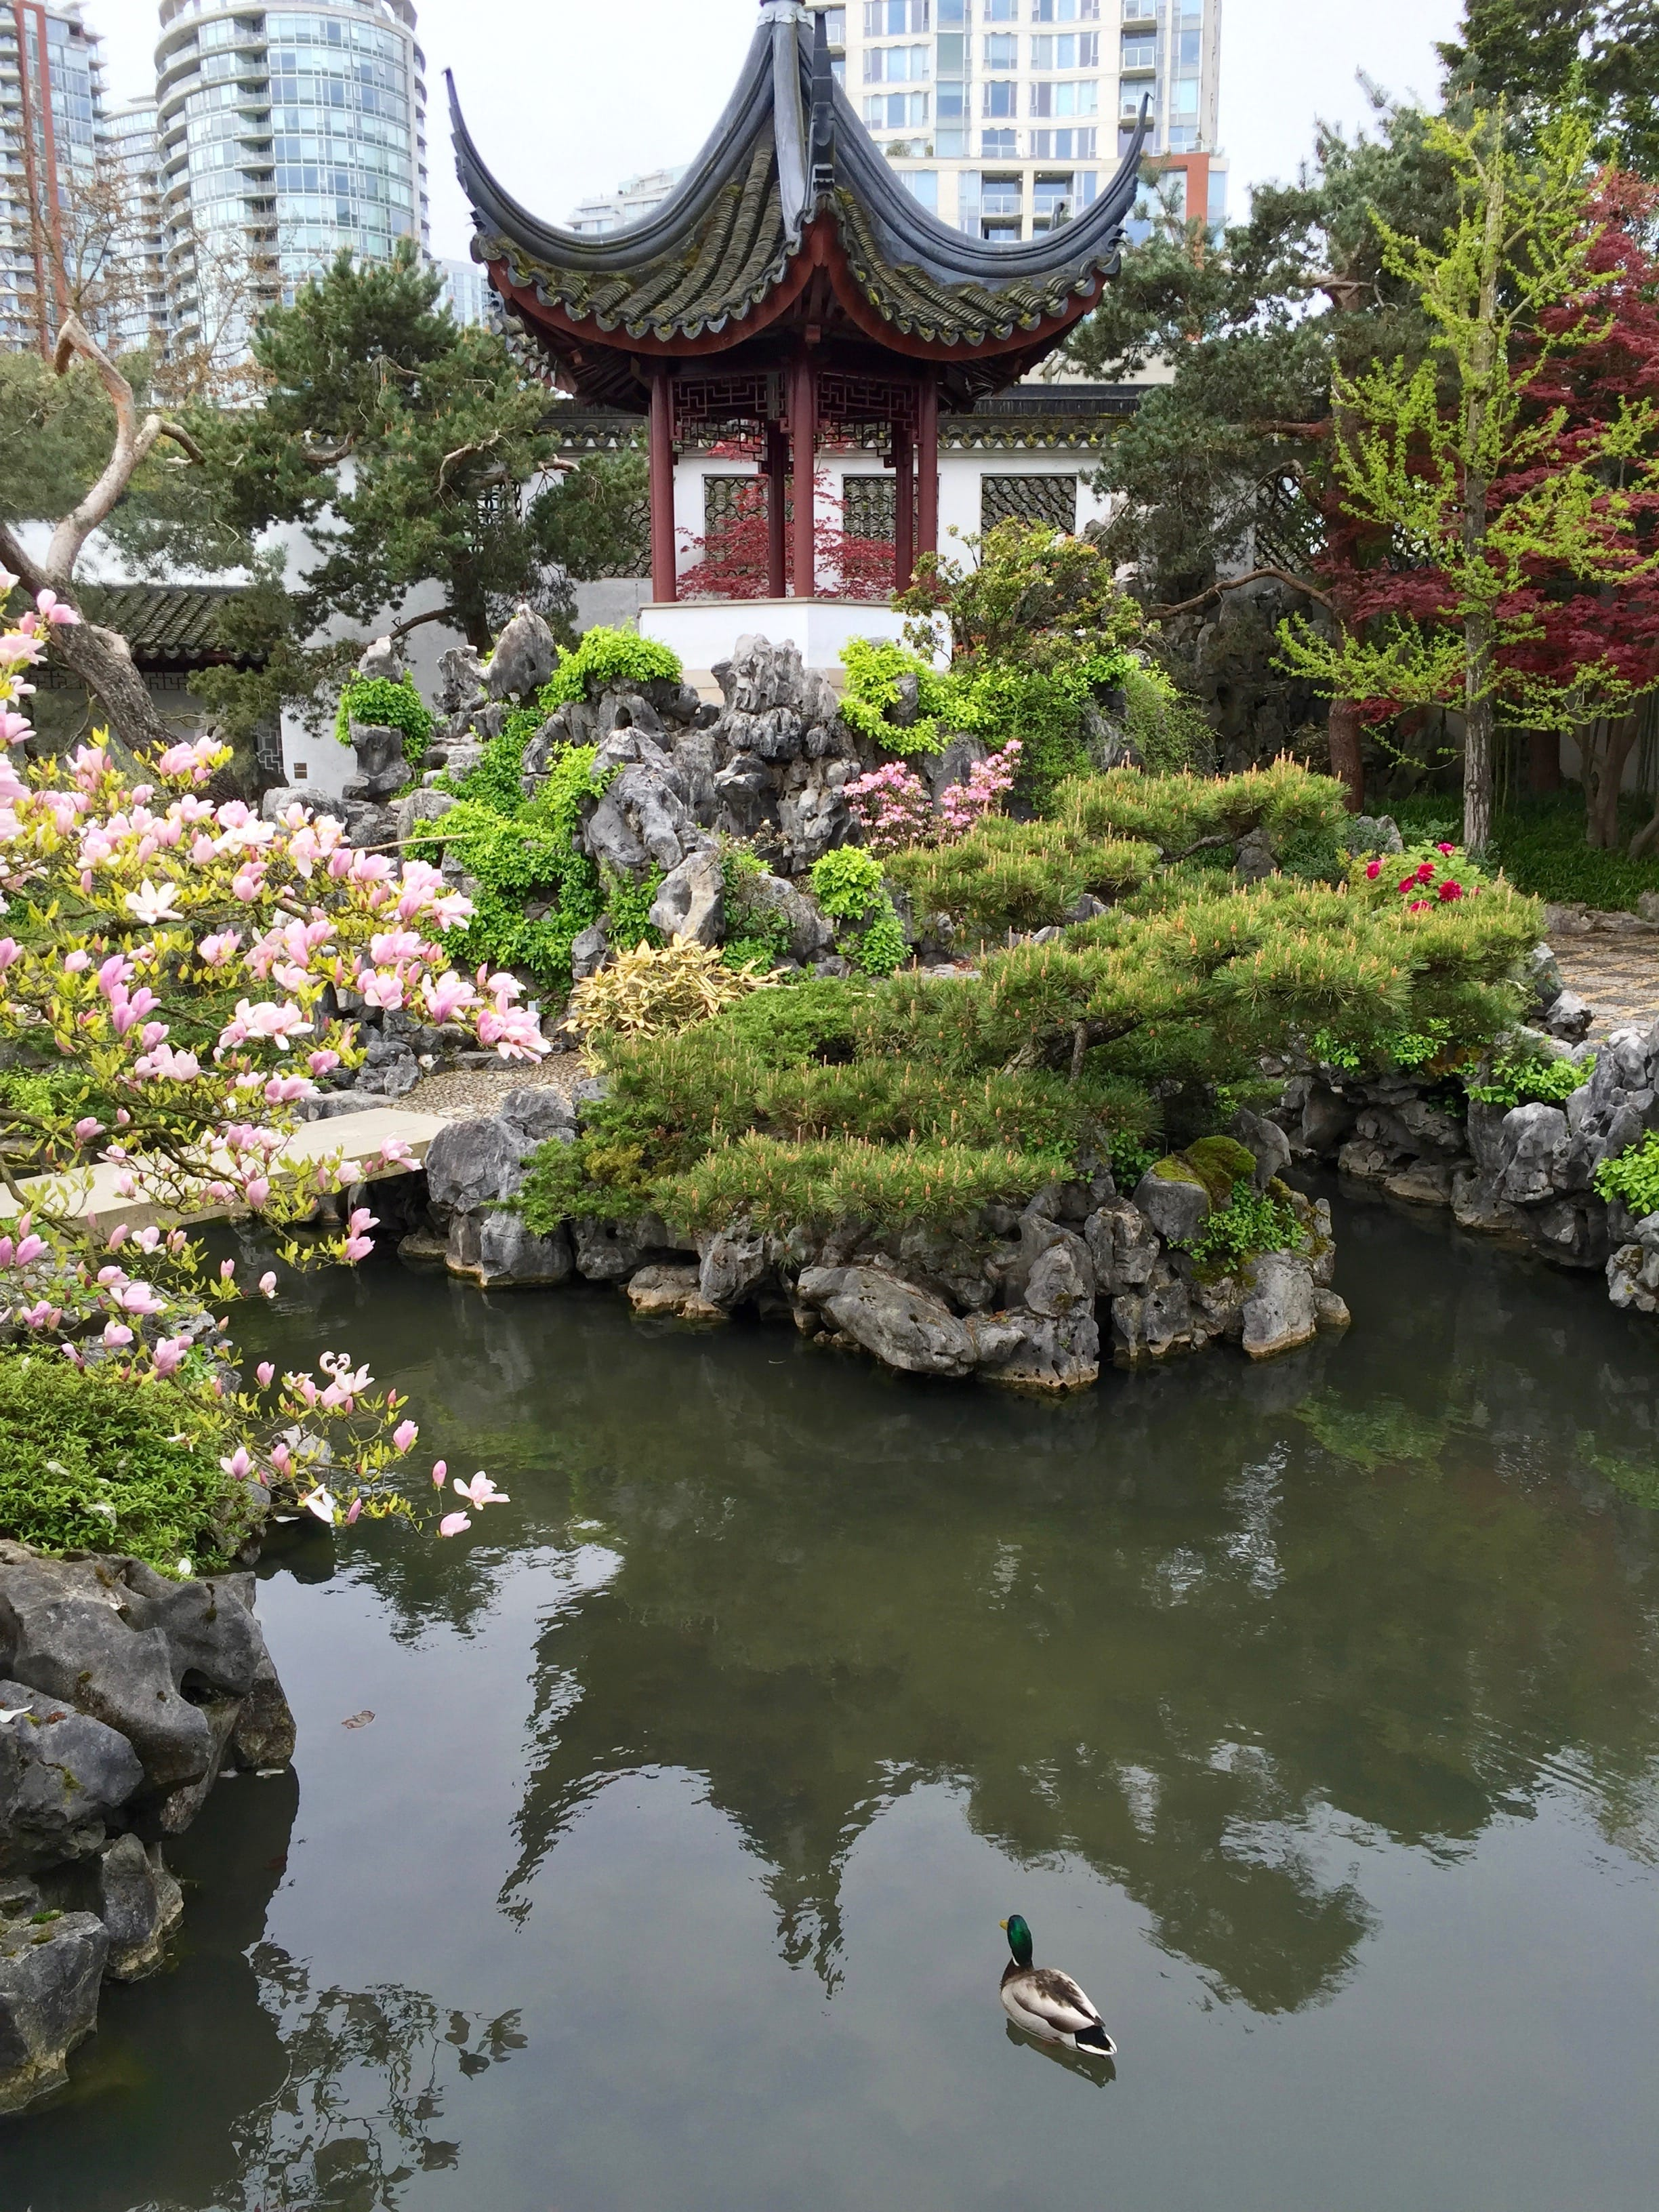 The Dr. Sun Yat-Sen Classical Chinese gardens were so cool. We got a tour of the gardens by a guide who taught us all sorts of things about ancient Chinese culture.